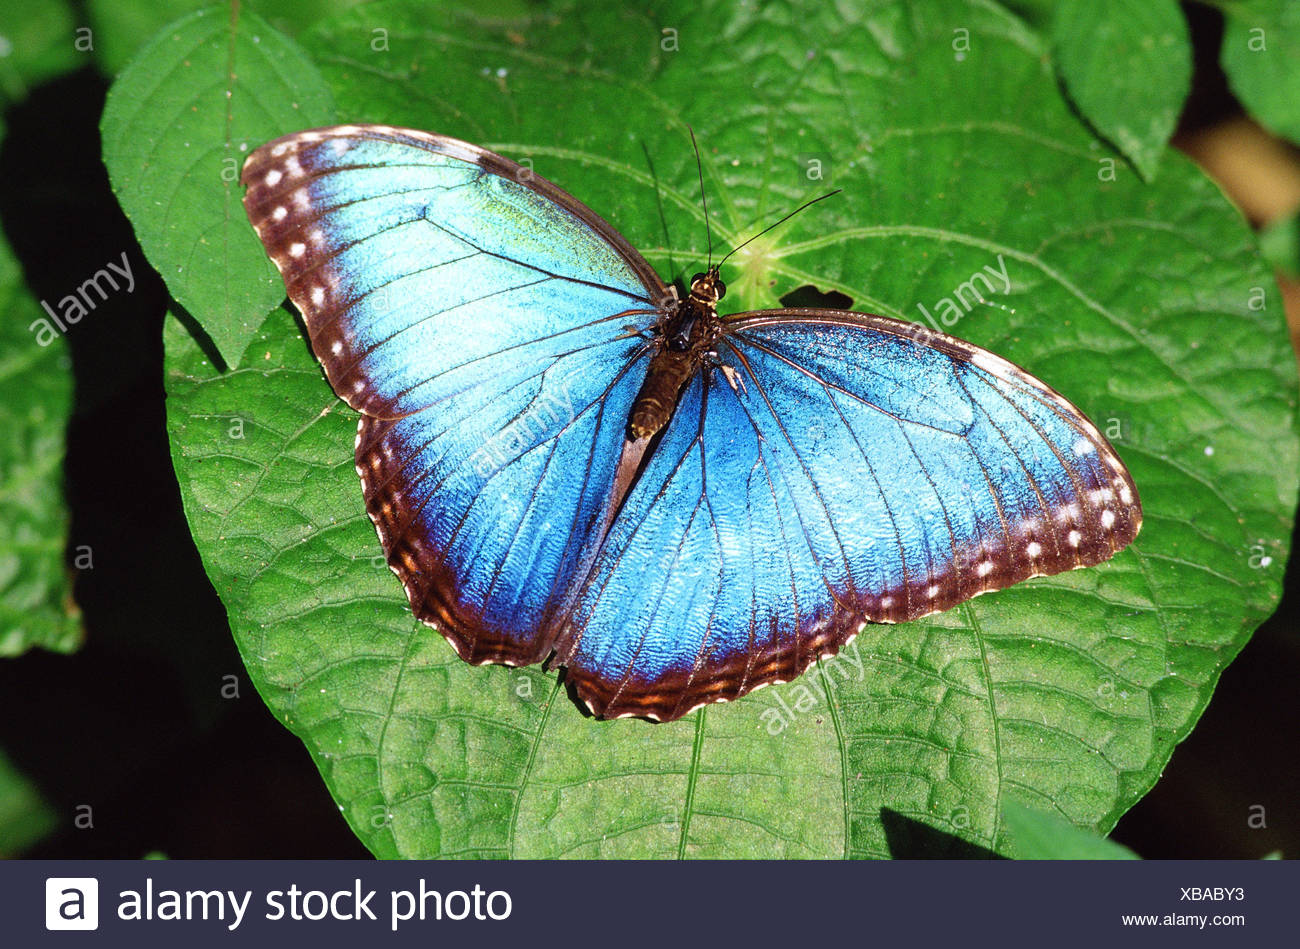 Blue morpho butterfly (Morpho peleides) on leaf. Costa Rica, South America. - Stock Image